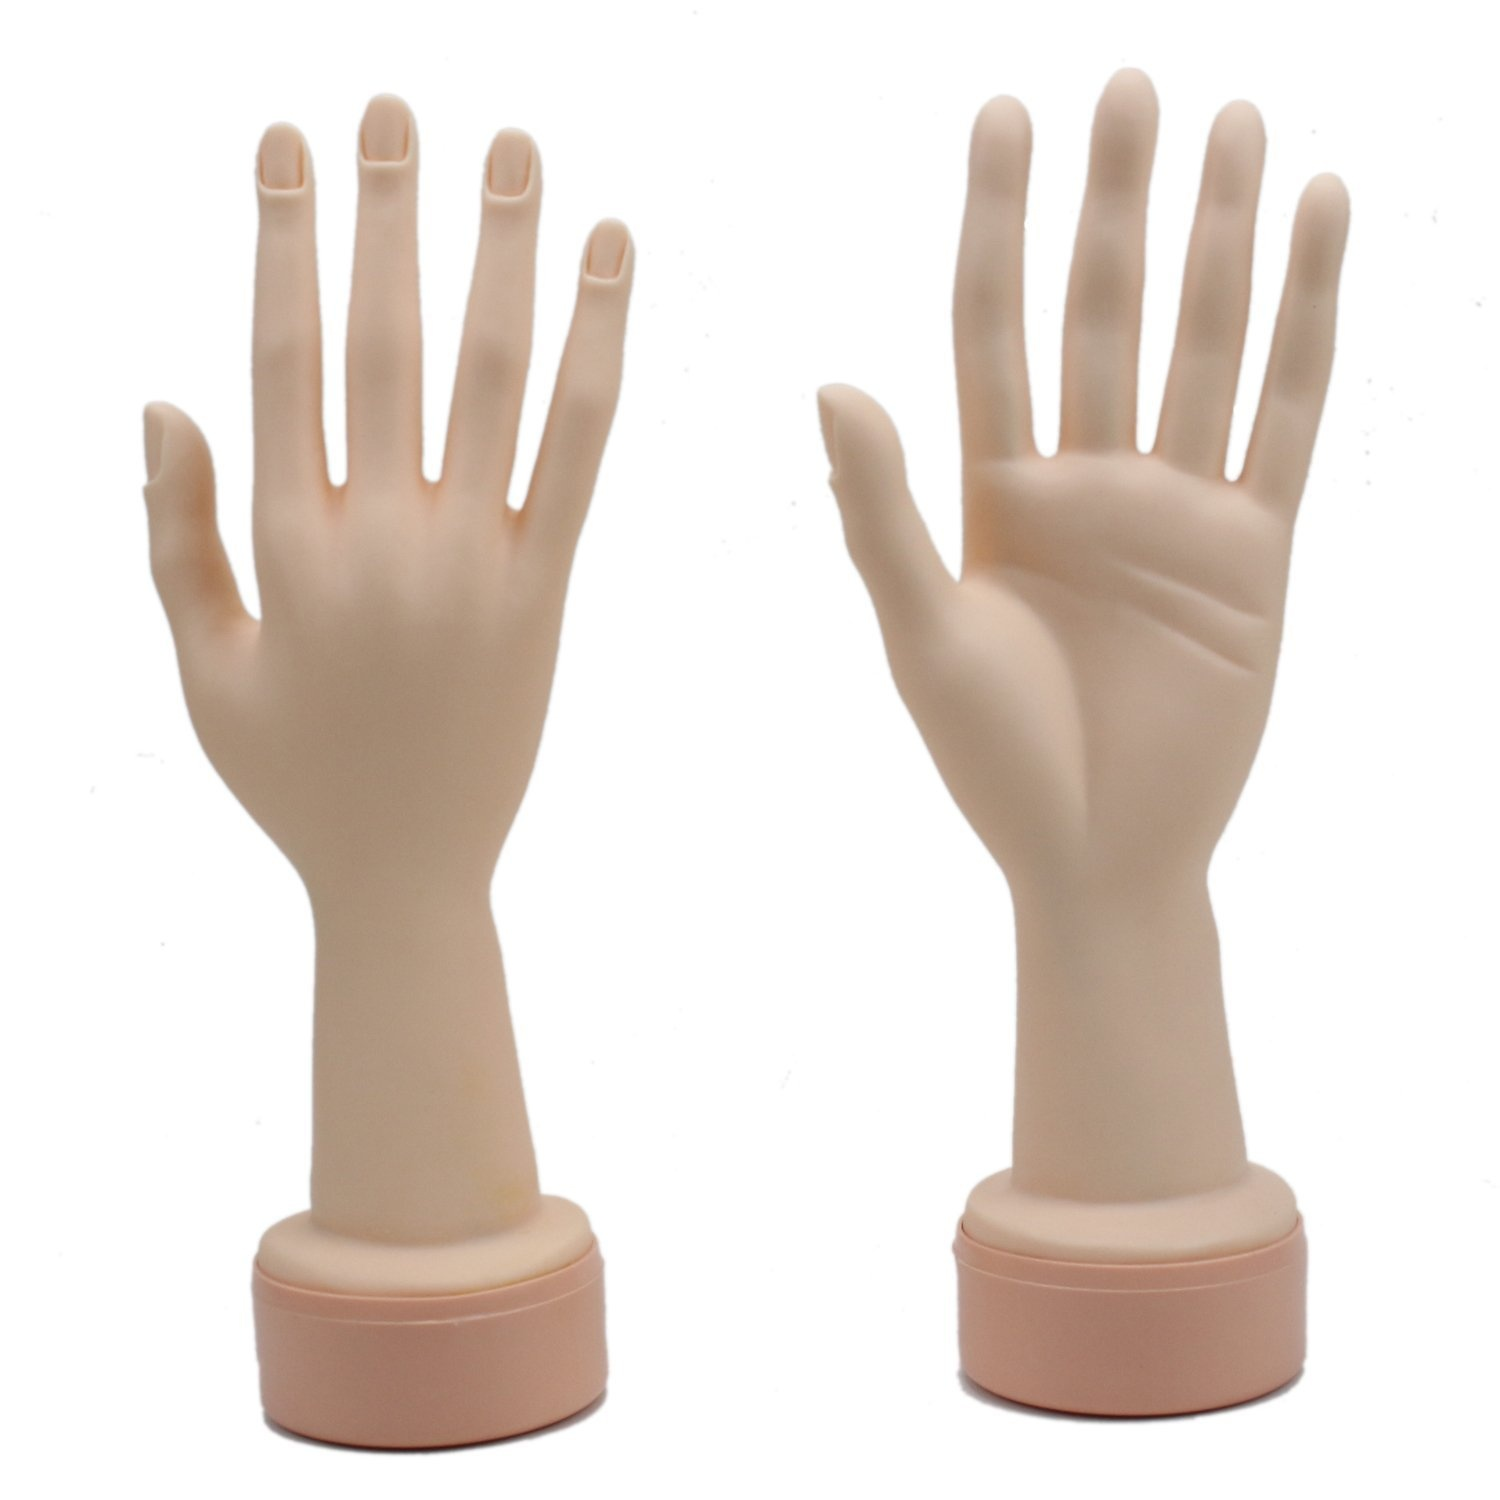 Mannequin Hand With Nails Beauty Beauty: Buy Online from Fishpond.co.nz